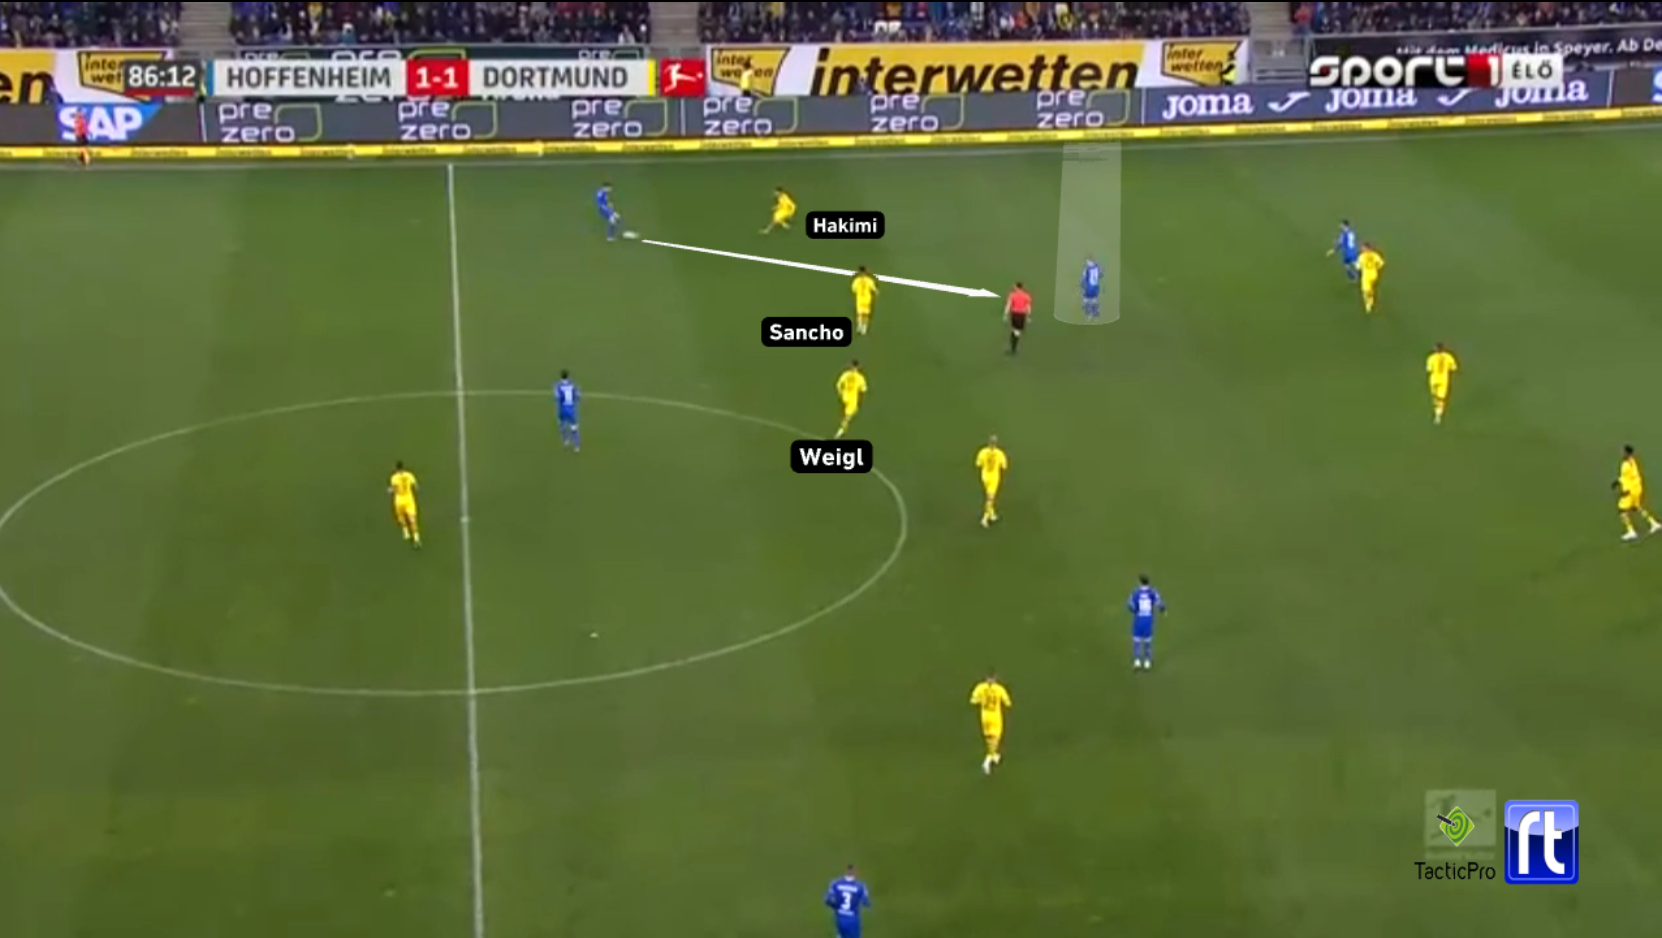 Bundesliga 2019/20: Hoffenheim vs Borussia Dortmund - tactical analysis tactics